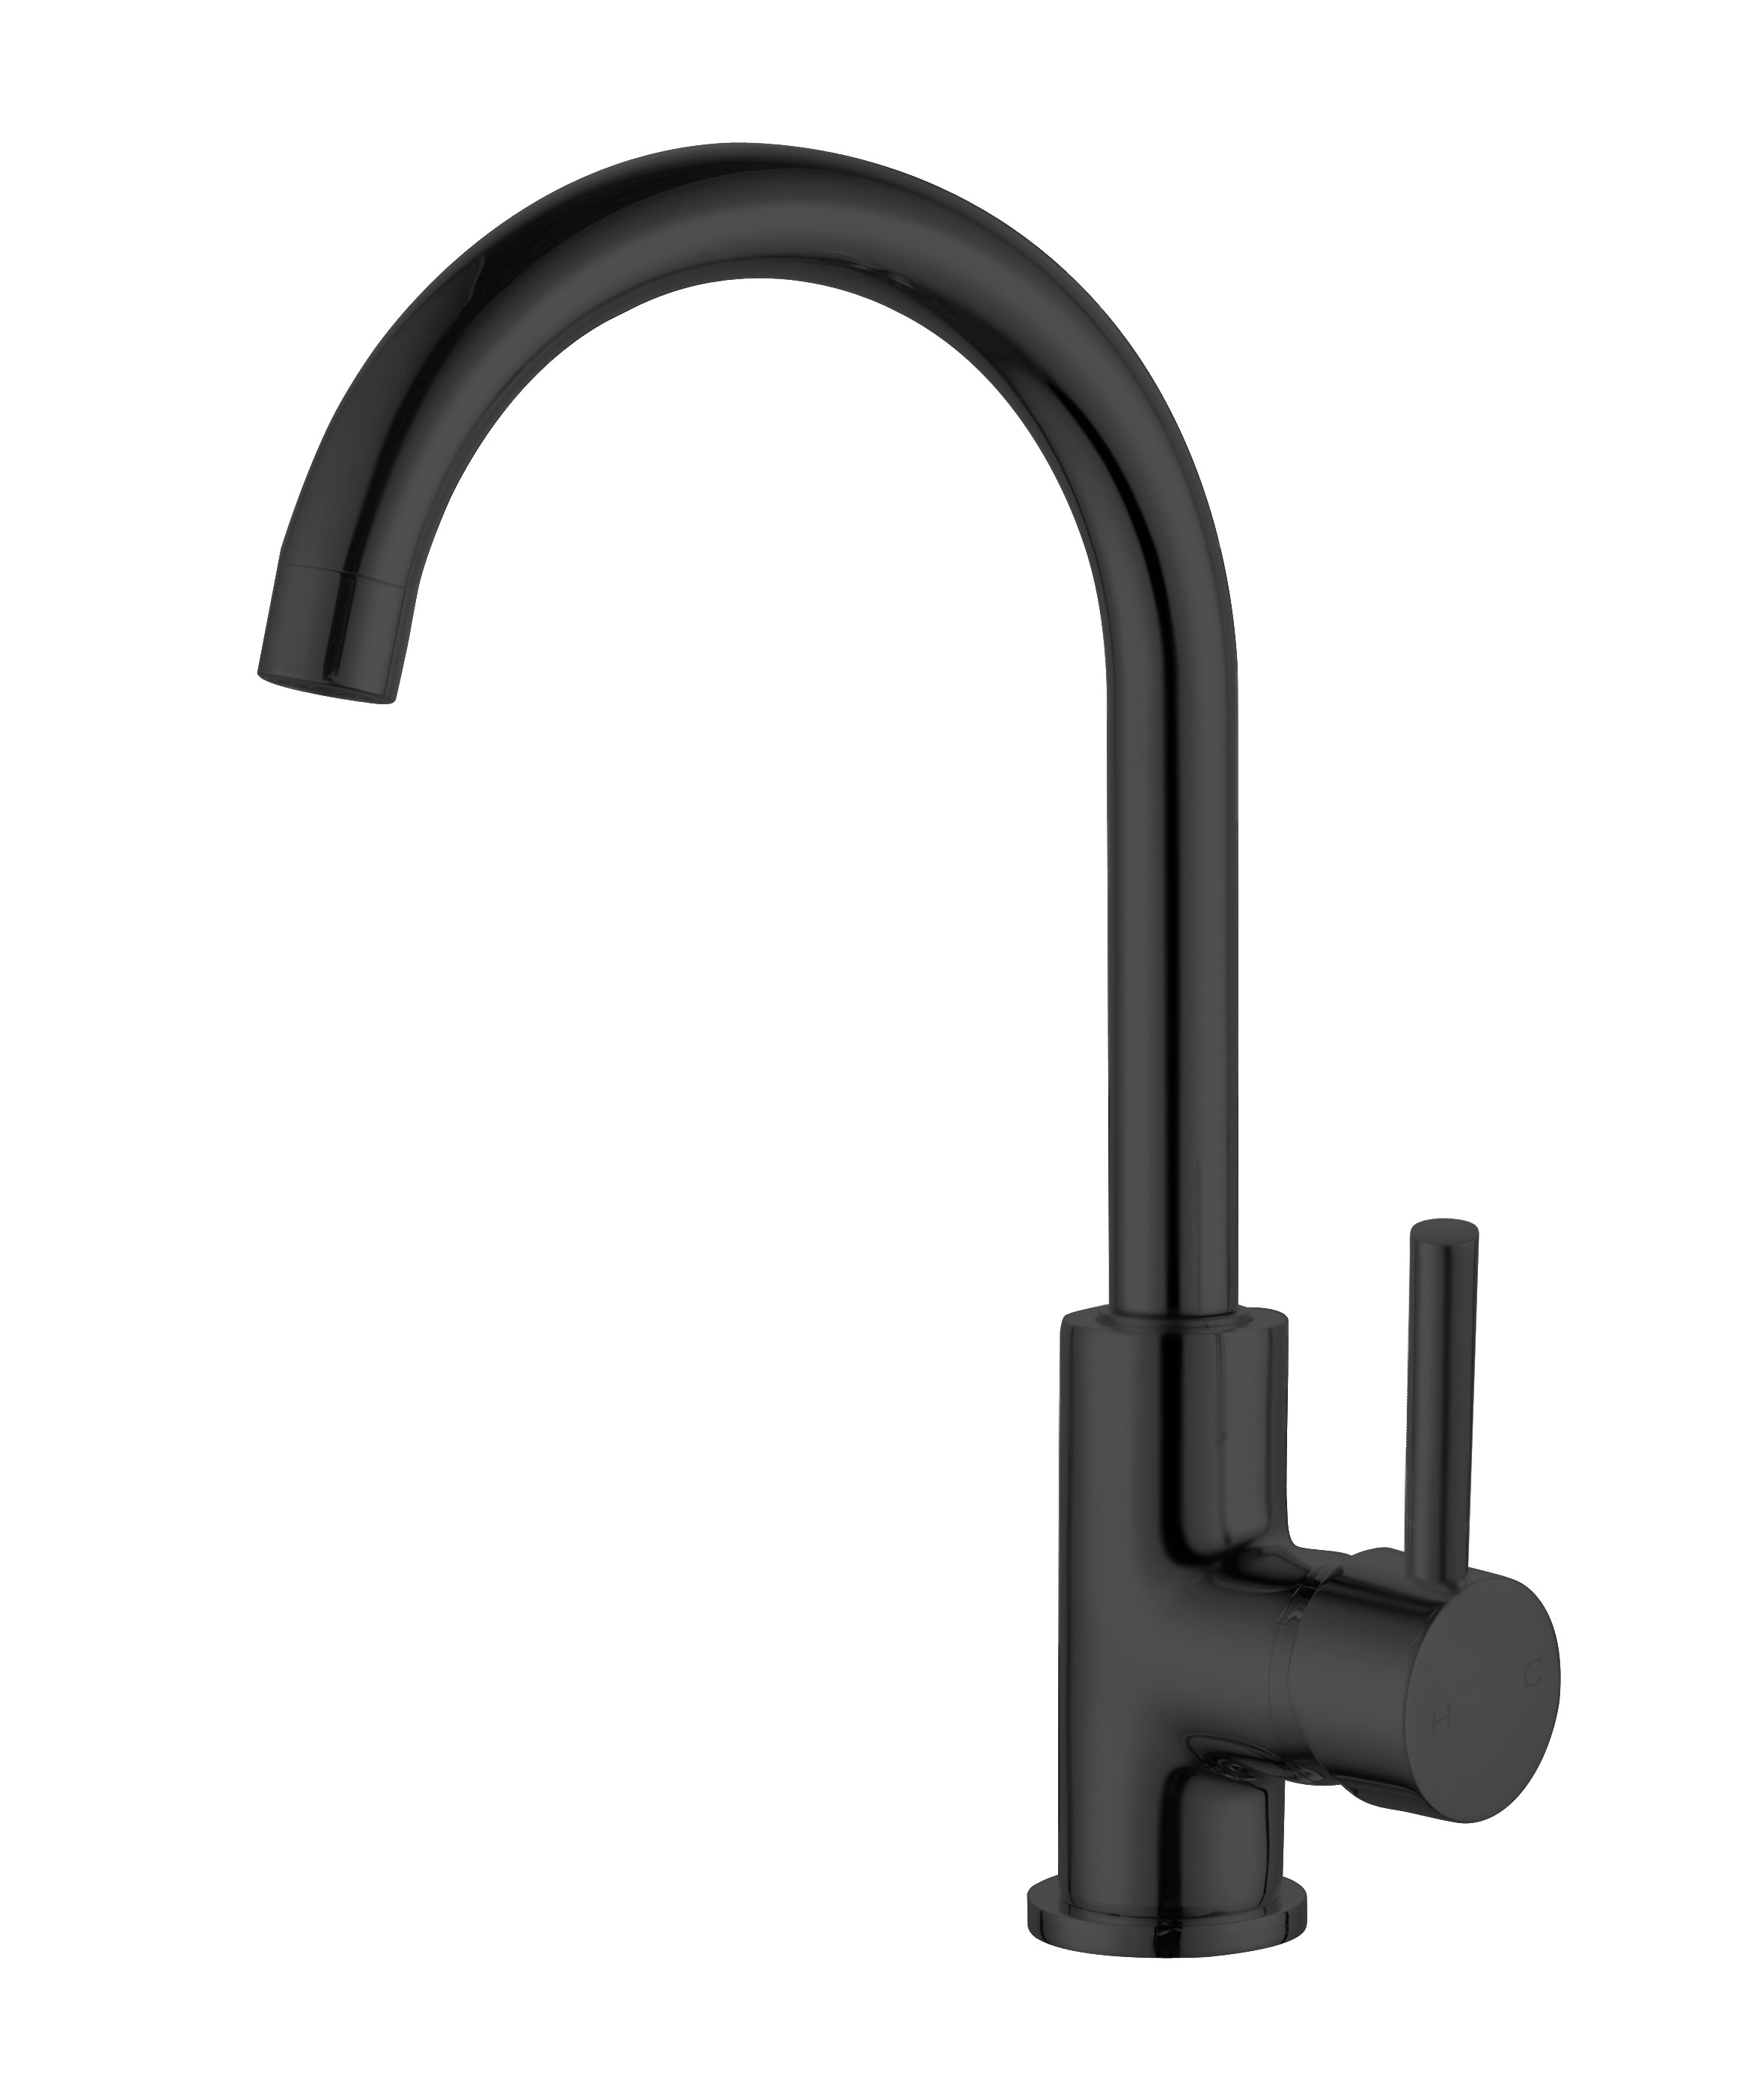 ORB gooseneck kitchen mixer matt black